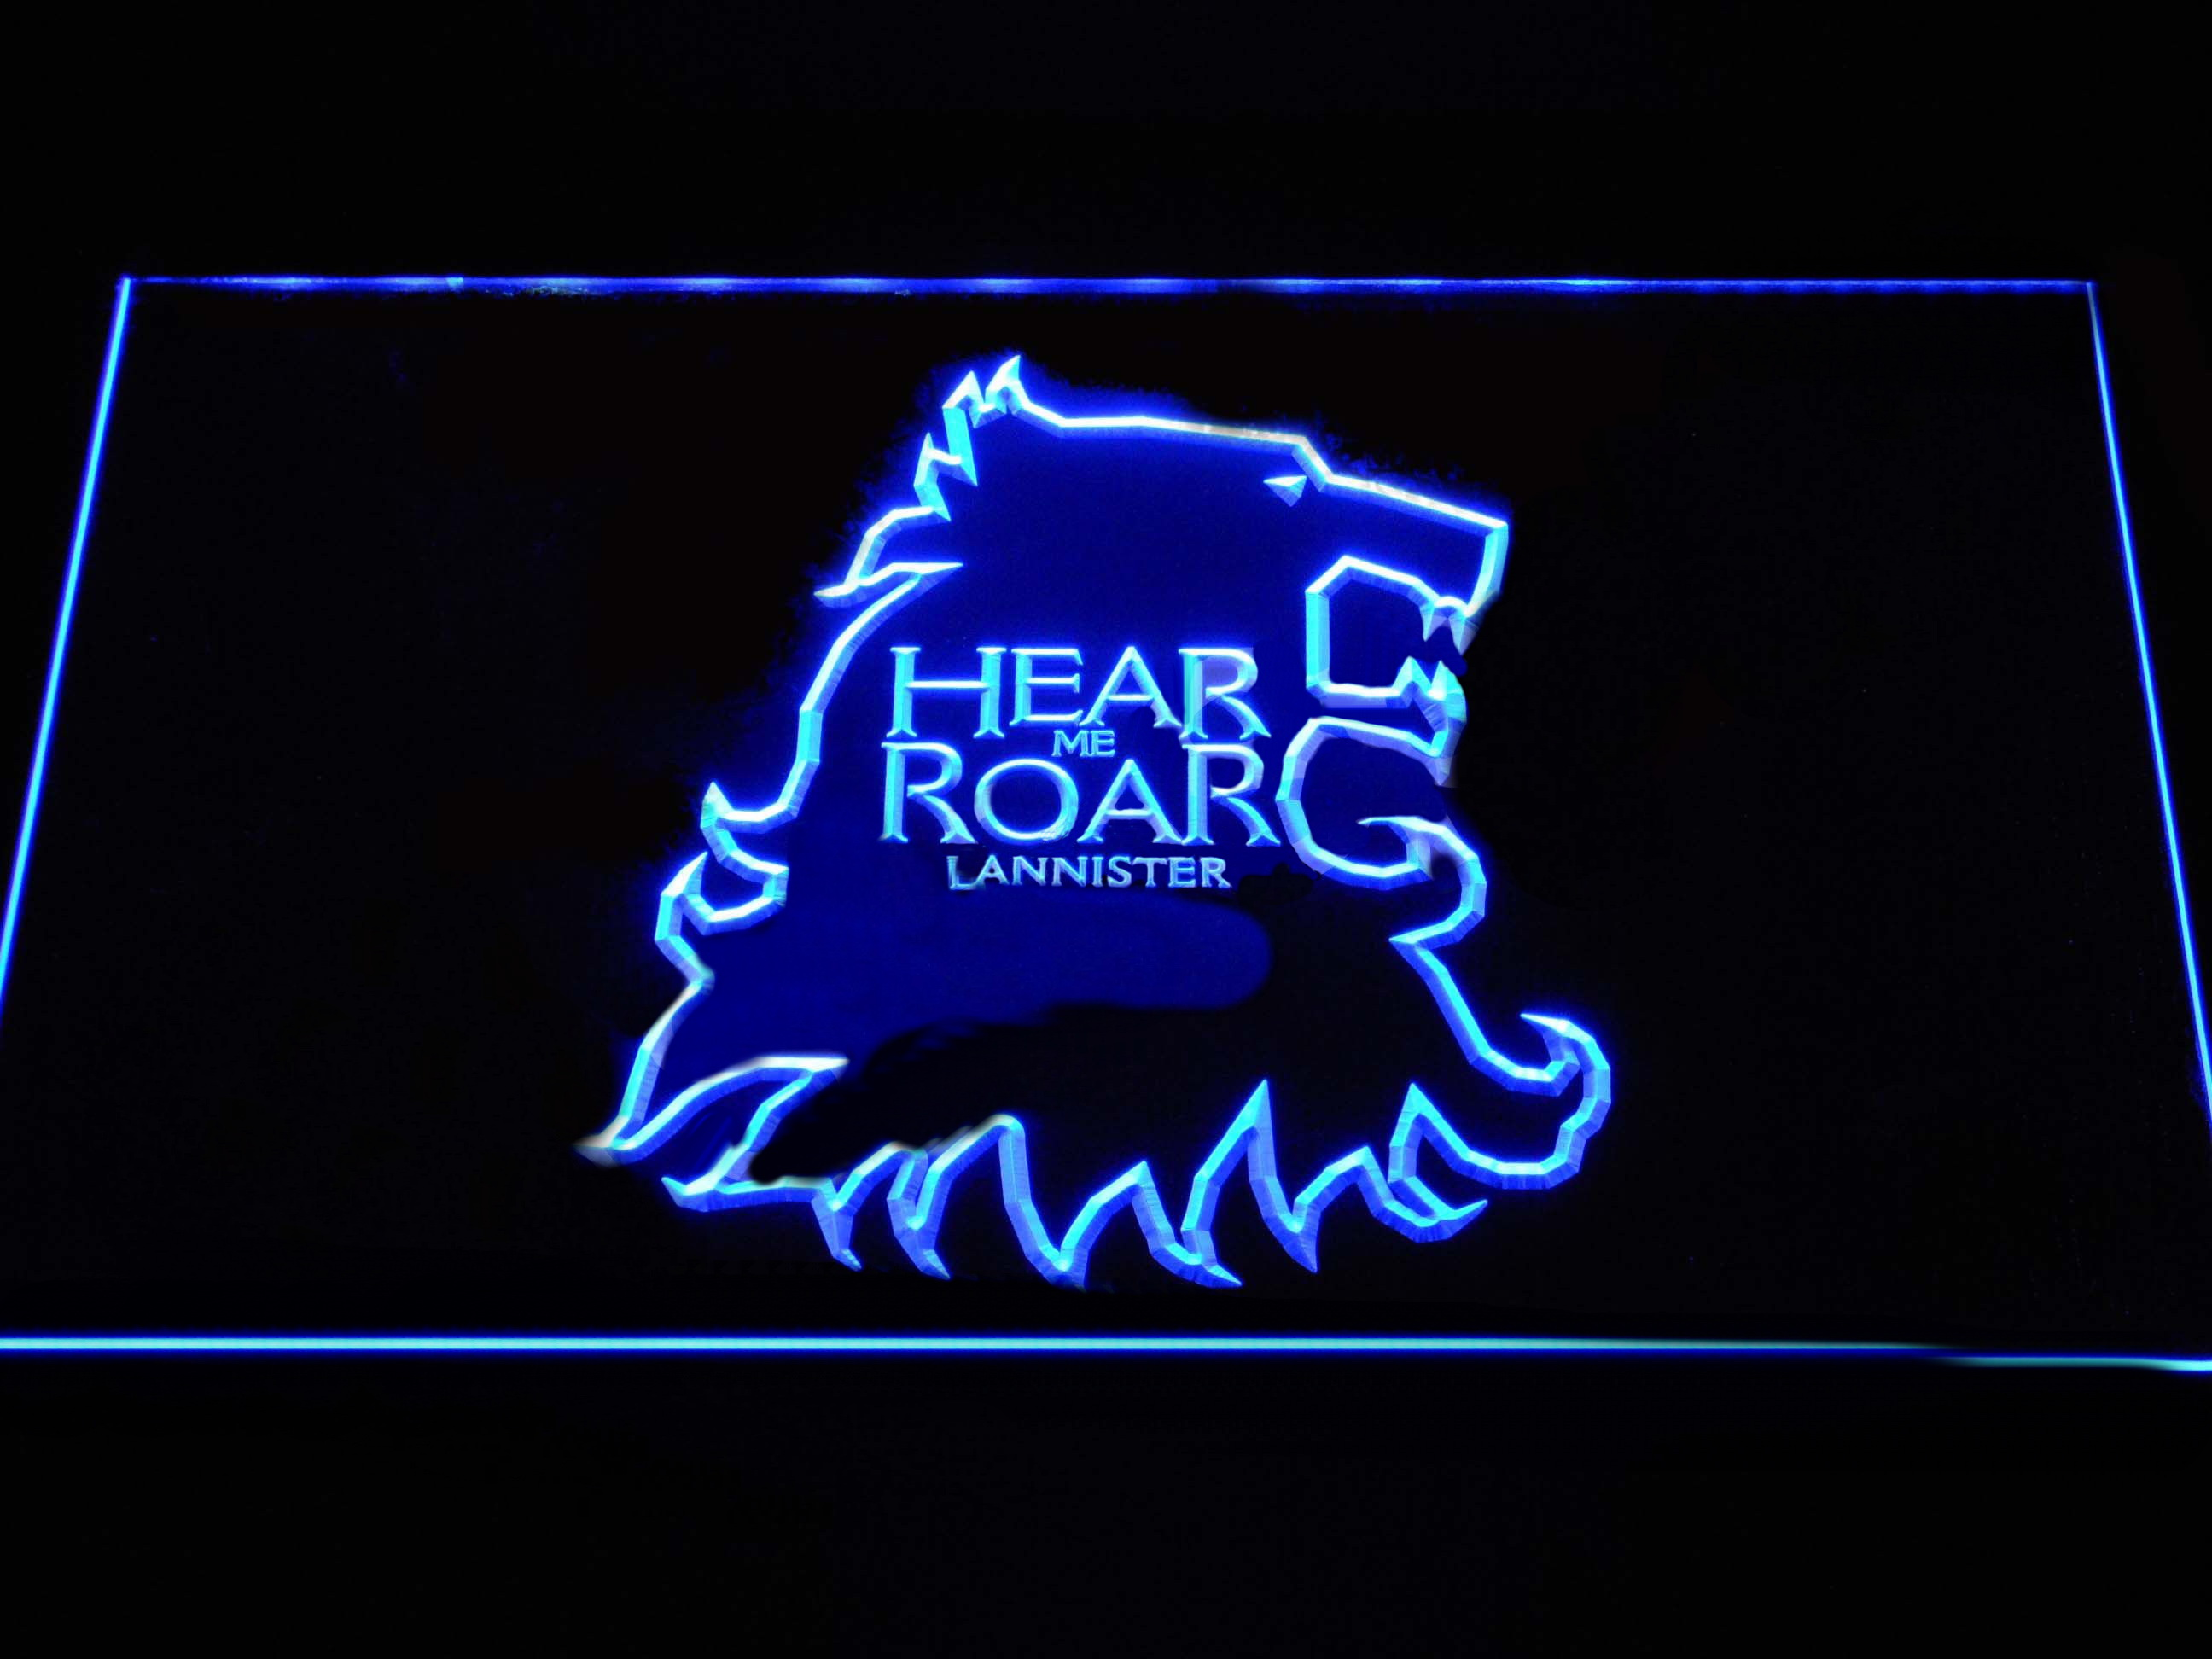 Game of Thrones Lannister Hear Me Roar Outline LED Neon Sign